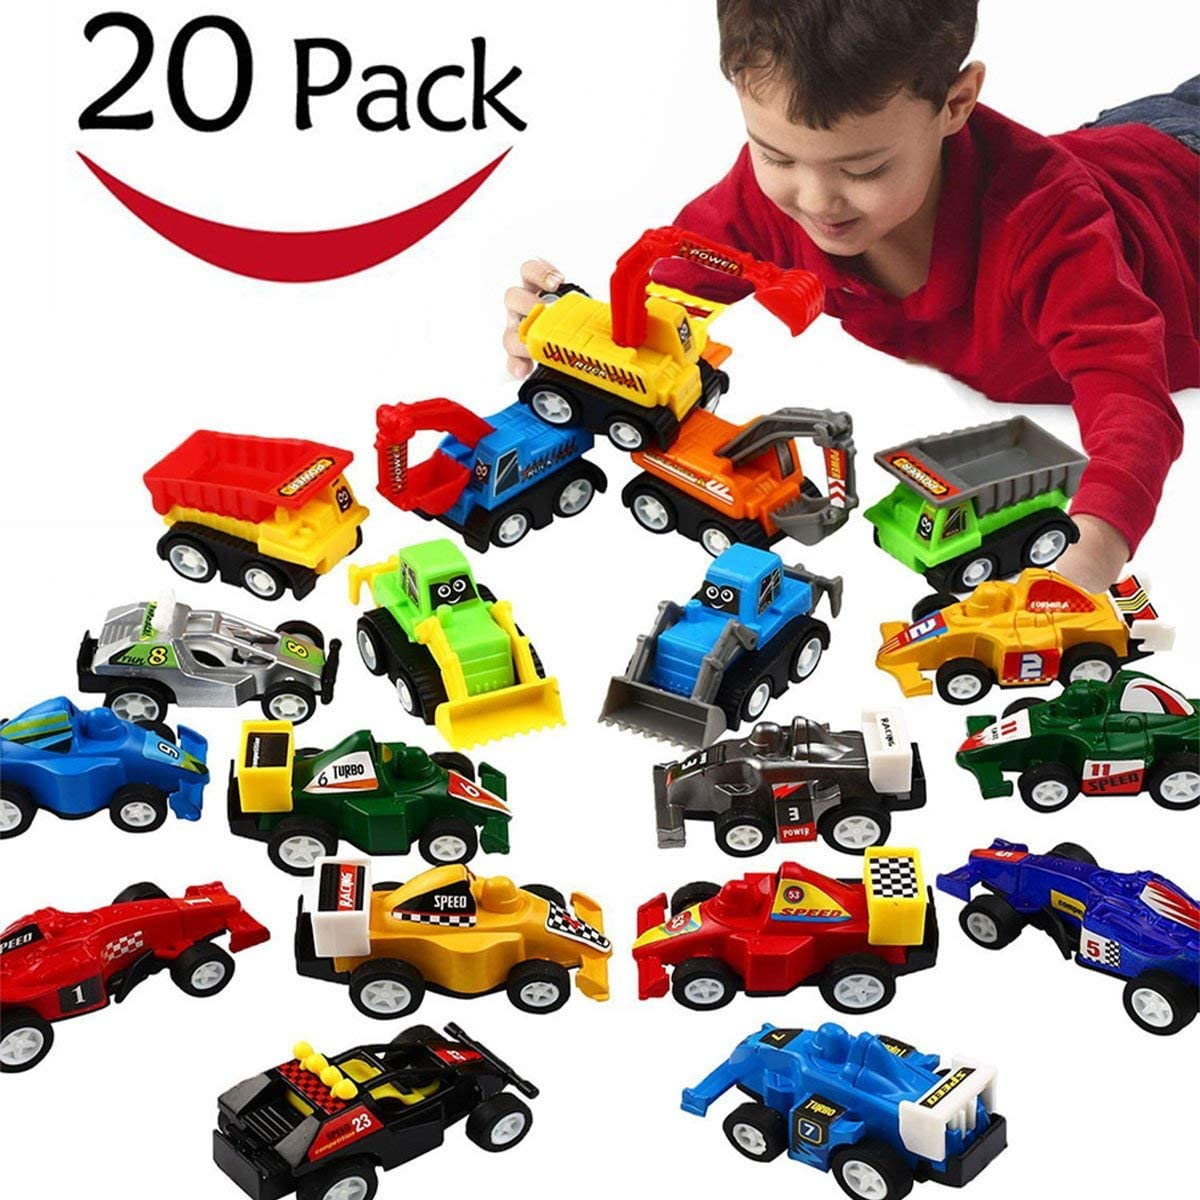 Example of toys for boys | Hire & Rental